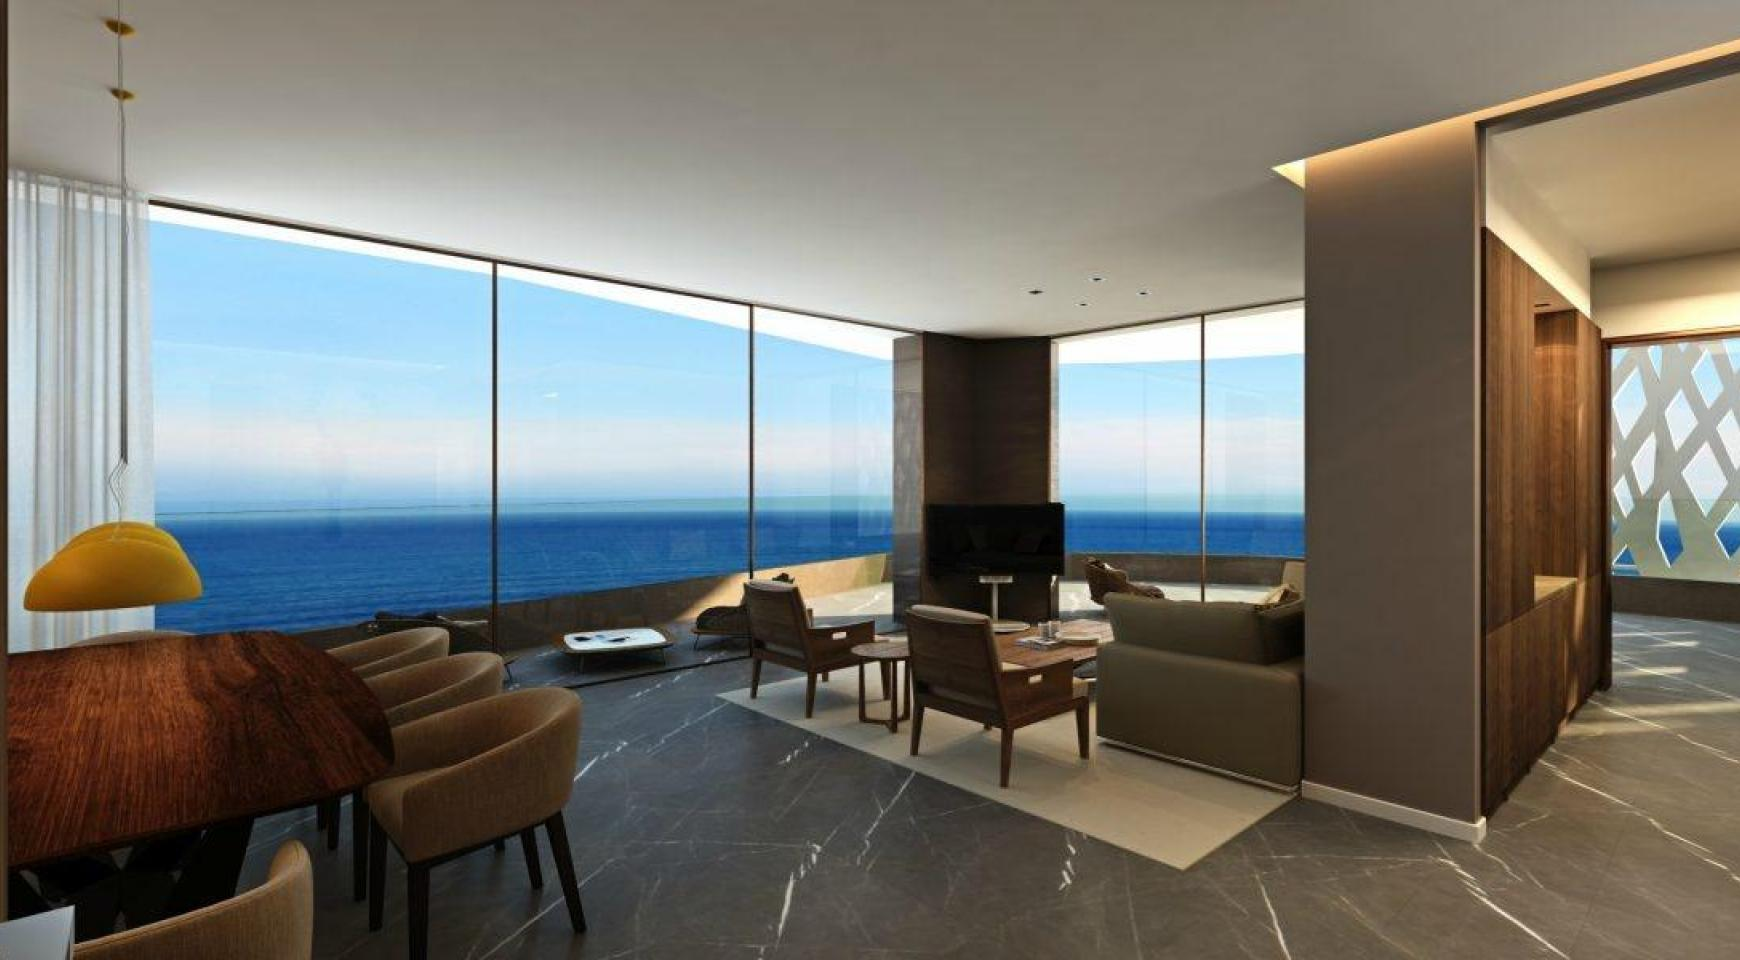 Modern 4 Bedroom Penthouse in a New Unique Project by the Sea - 17